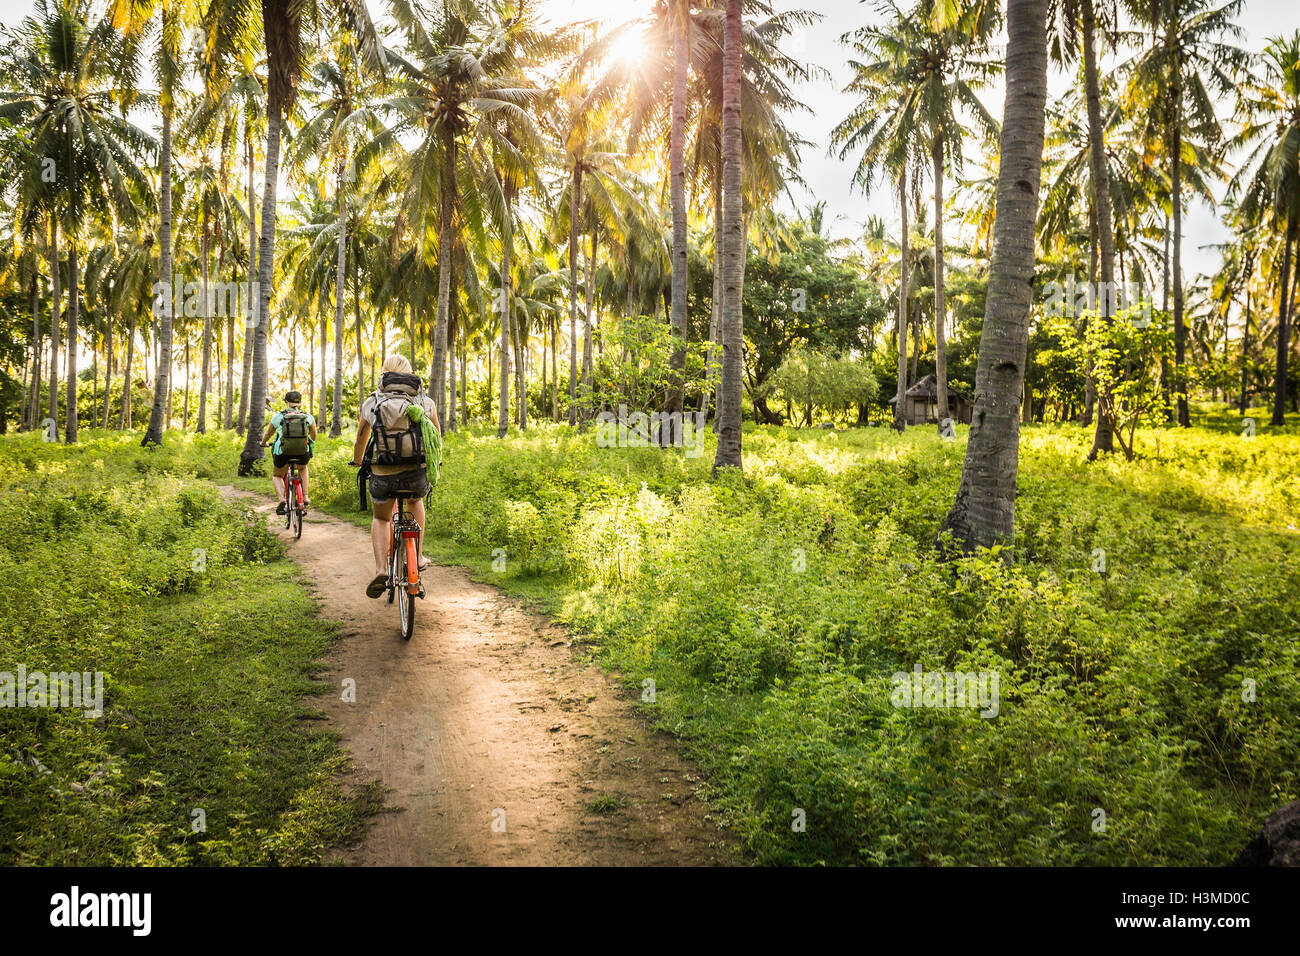 Rear view of two young women cycling in palm tree forest, Gili Meno, Lombok, Indonesia - Stock Image